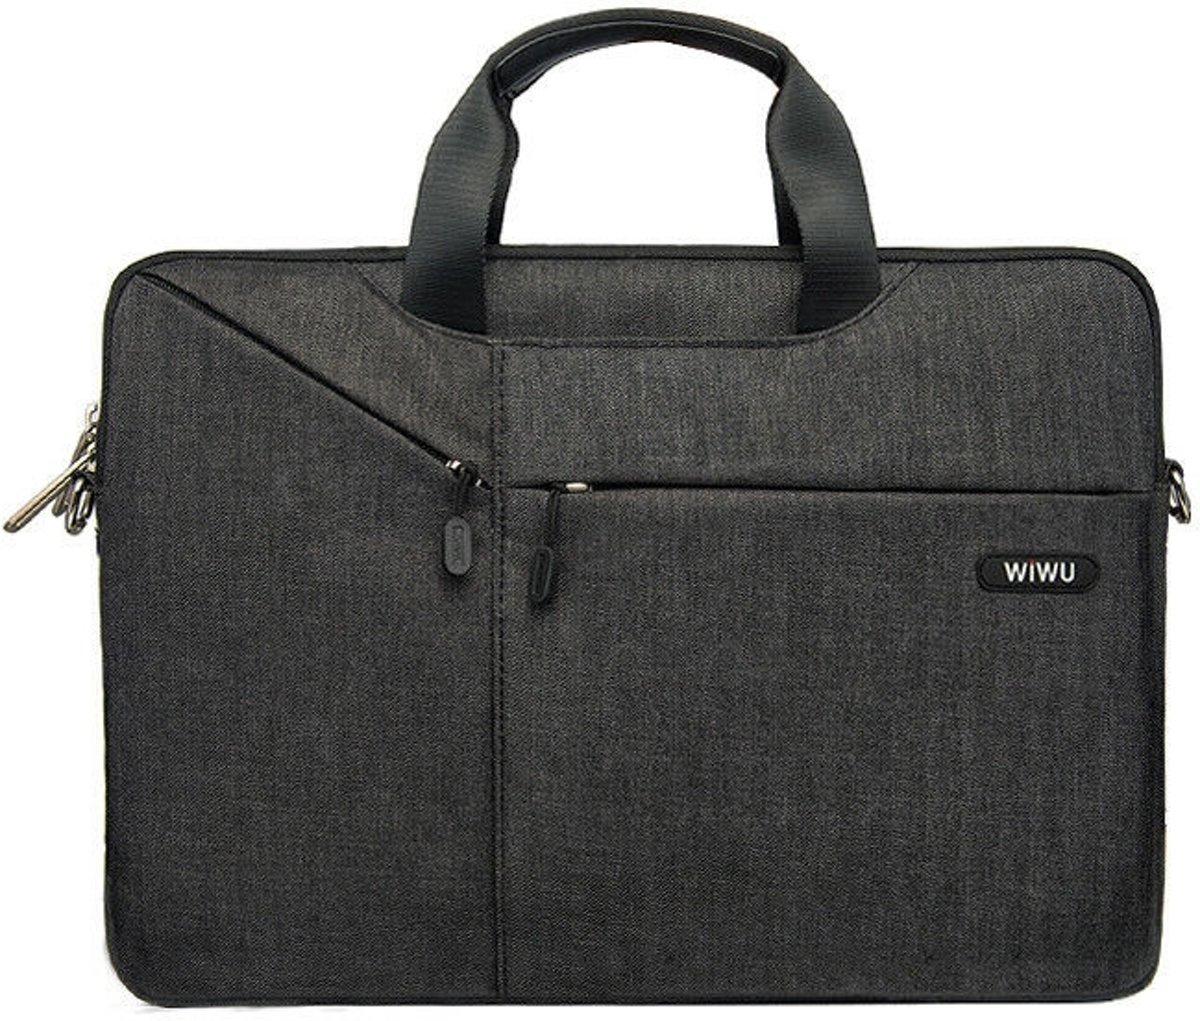 Laptoptas voor 15.4 inch laptop - WIWU City Commuter Bag - Zwart